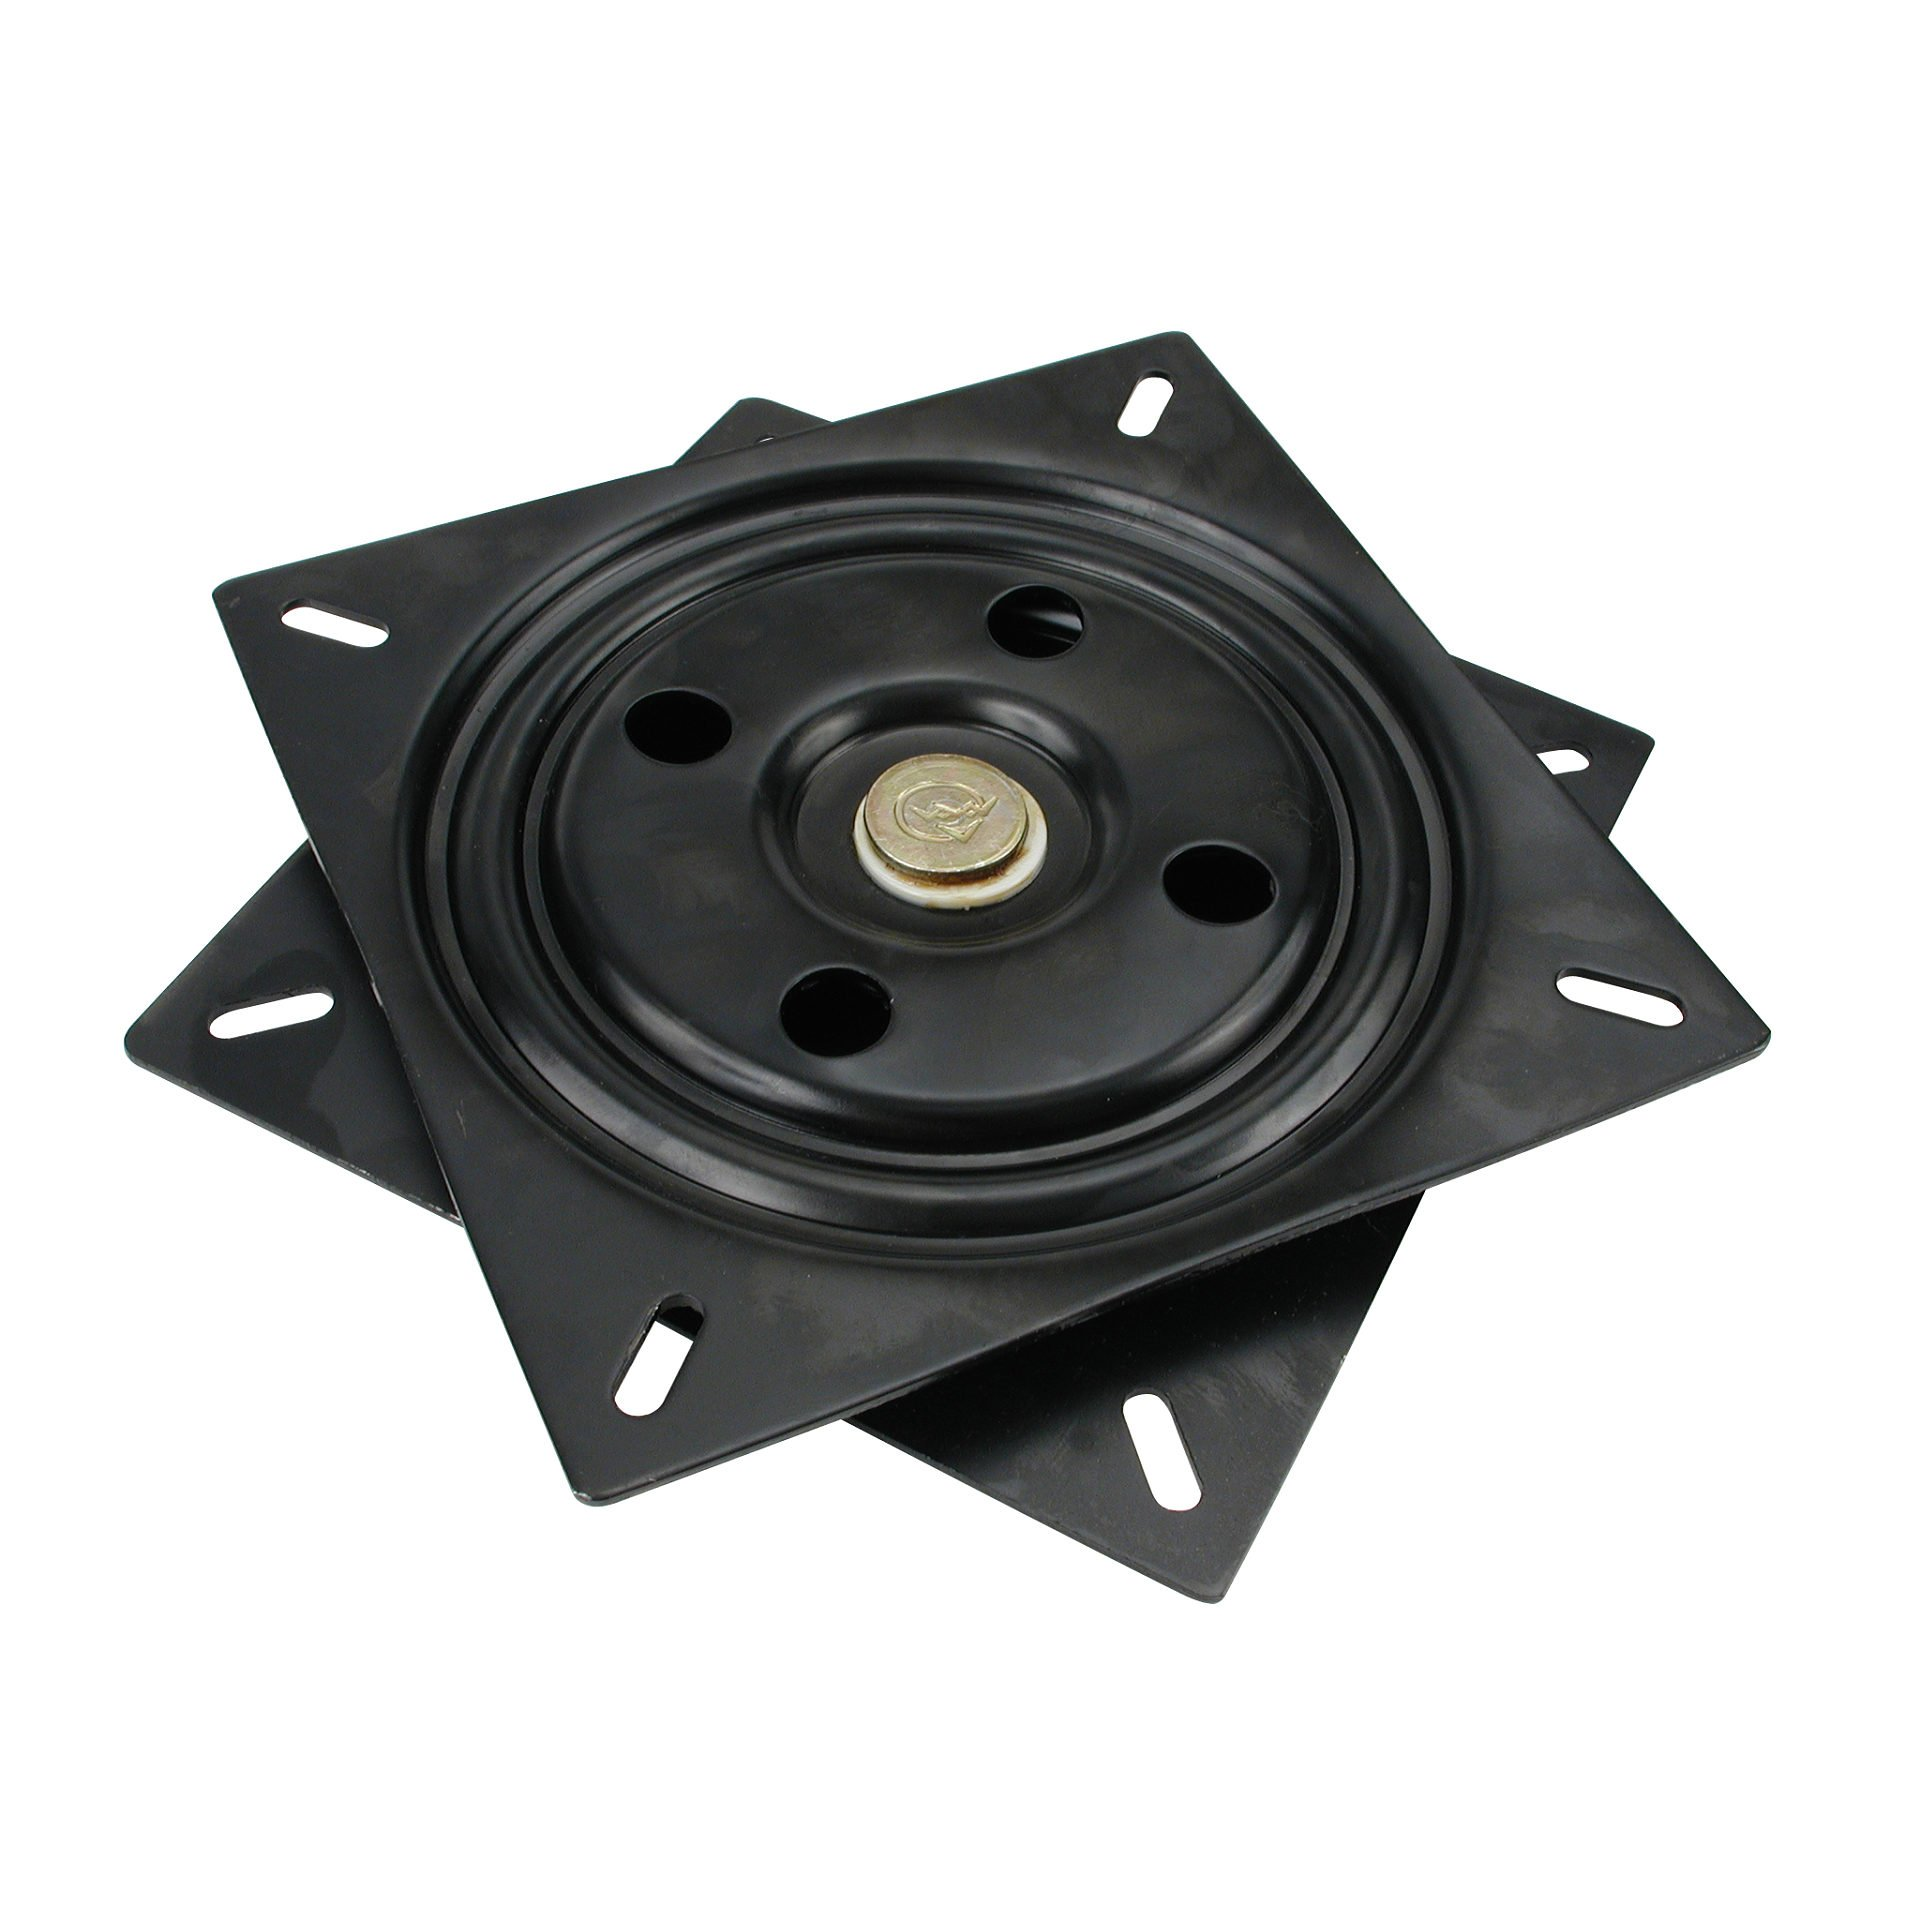 Richelieu Hardware UC2212 Swivel Plate, 7.68 in, Black